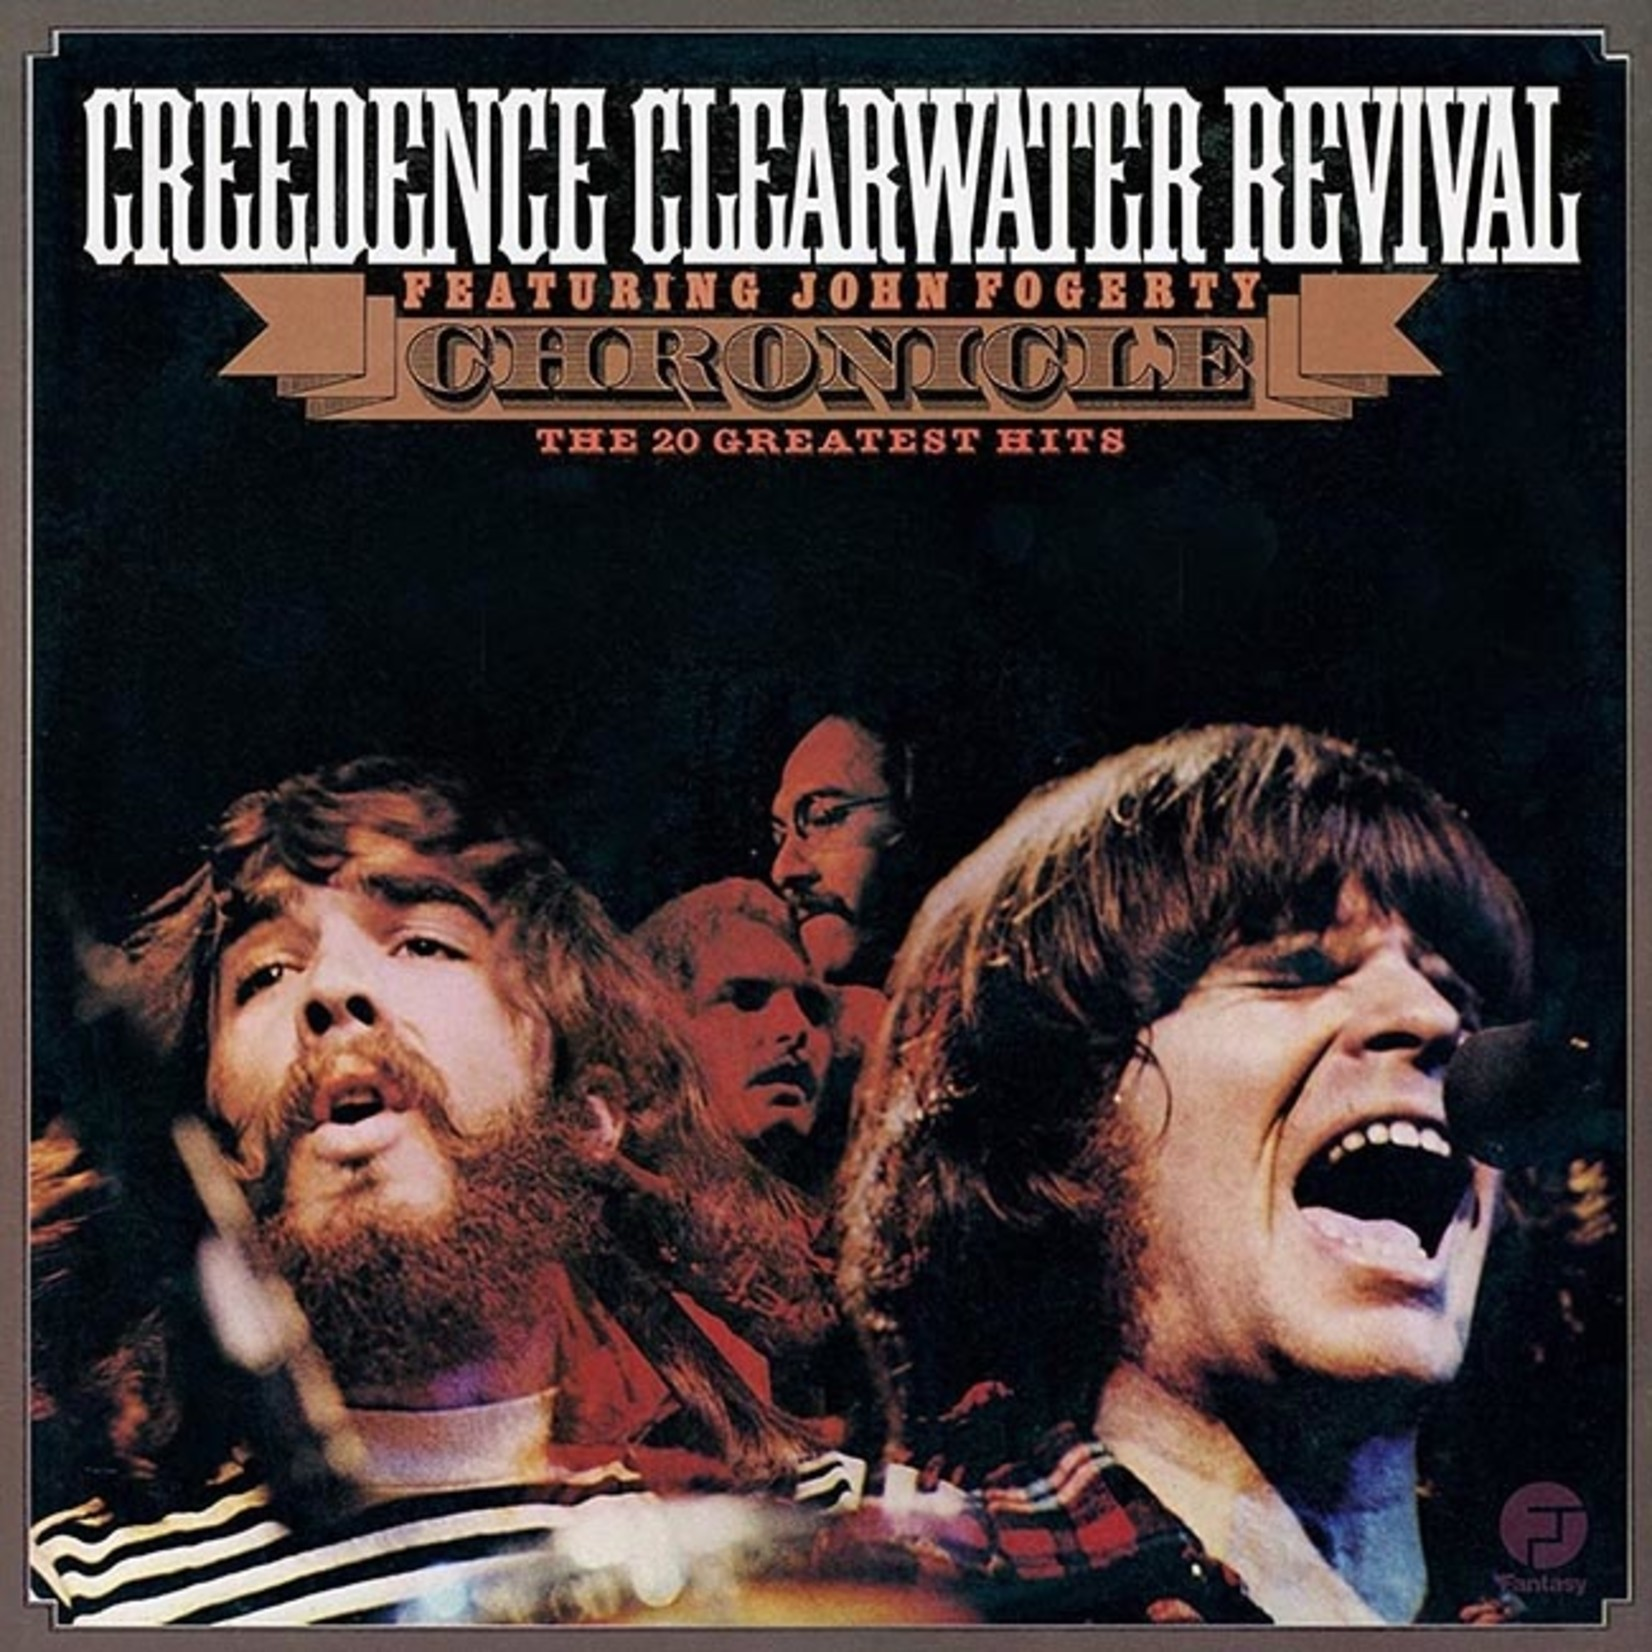 [New] Creedence Clearwater Revival: Chronicle The 20 Greatest Hits (2LP)